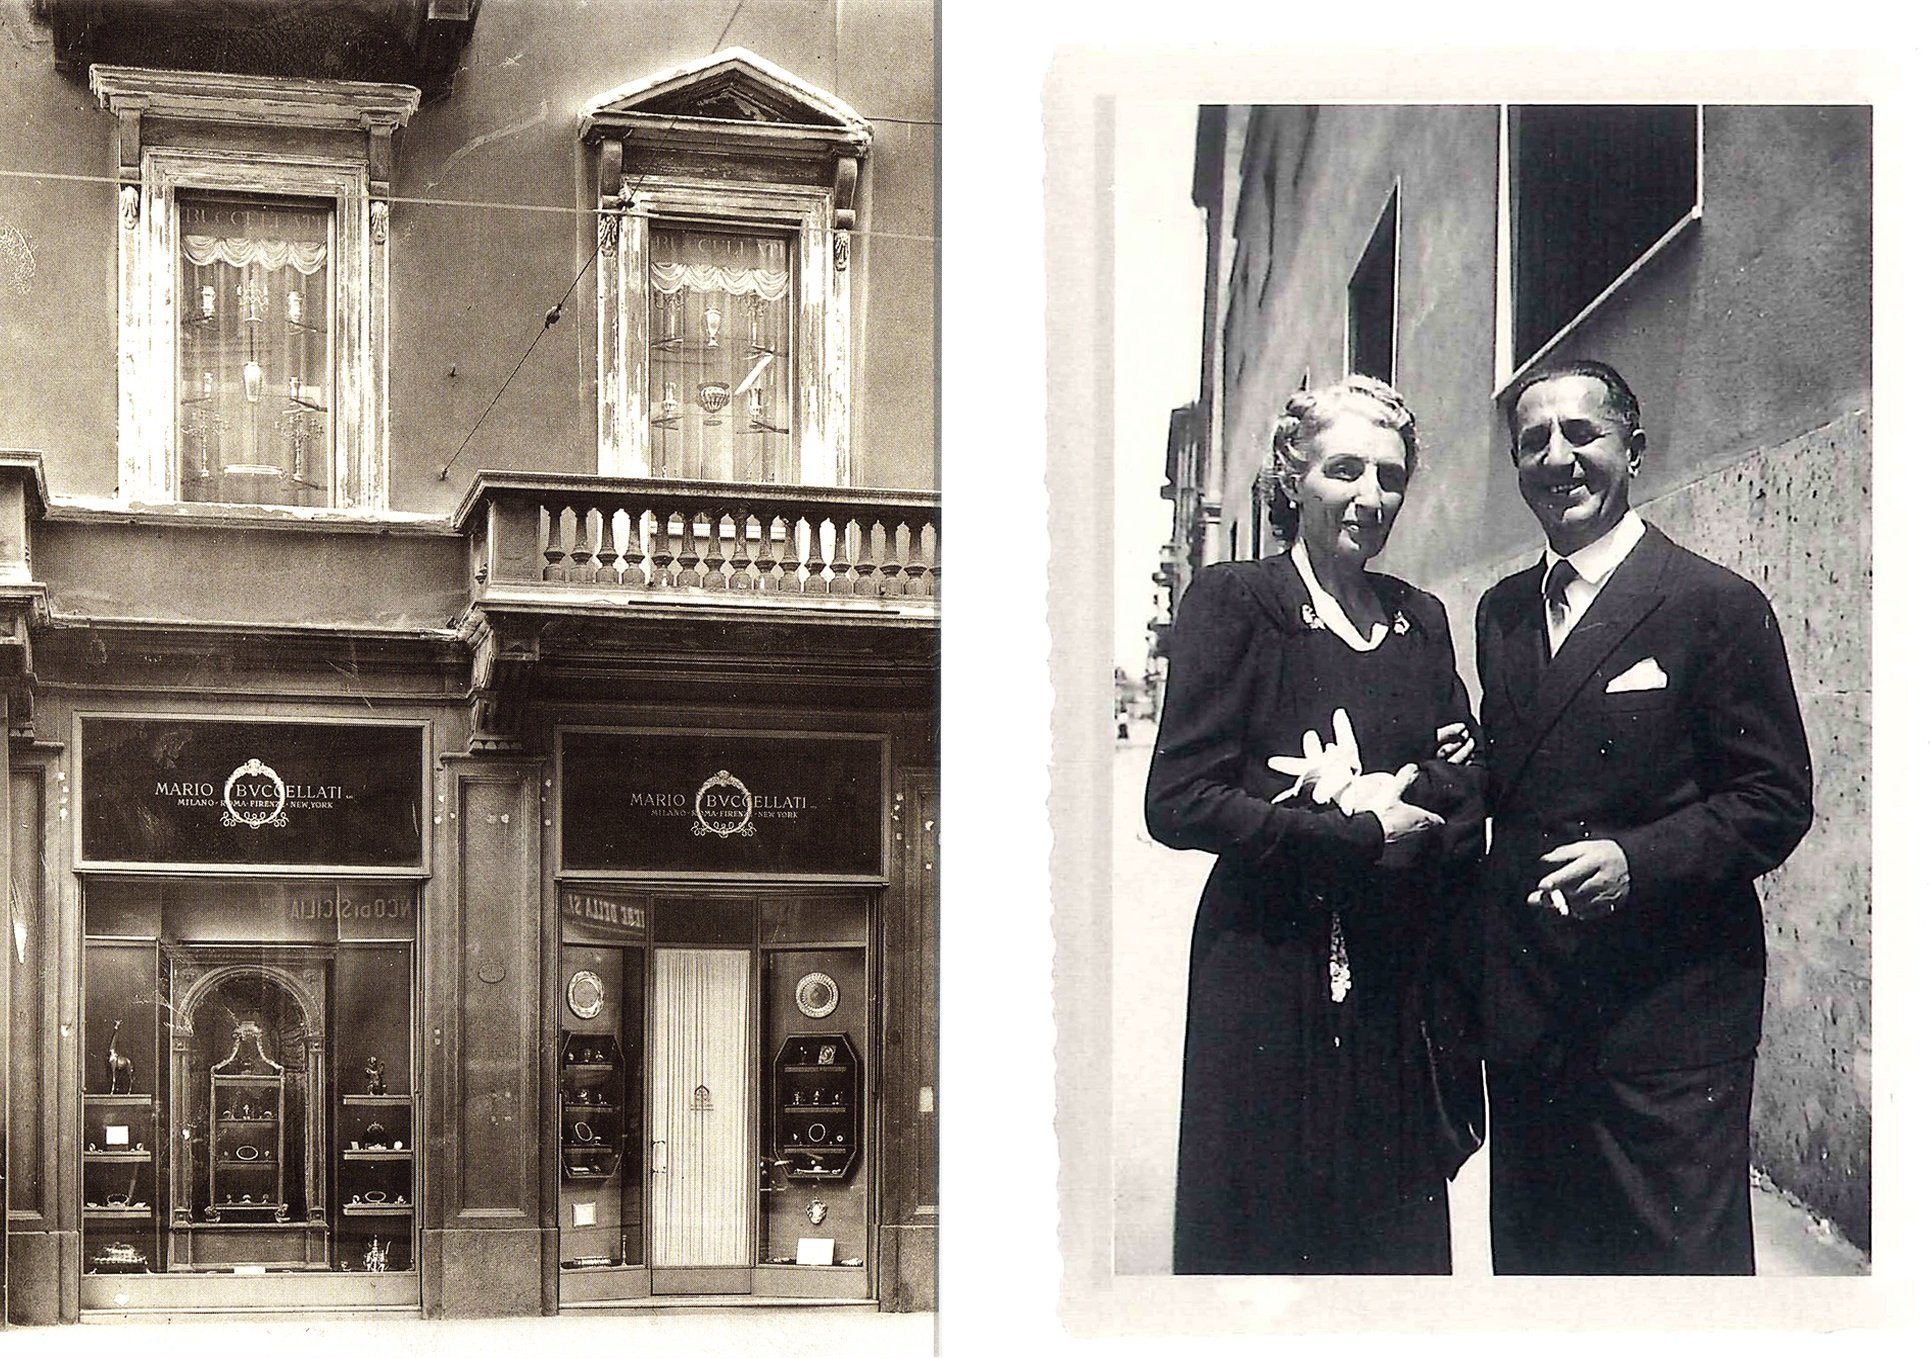 The first Buccellati boutique in Milan in the early 20th century. Mario Buccellati, the founder of the Italian jewelry company Buccellati, with his wife, Maria.